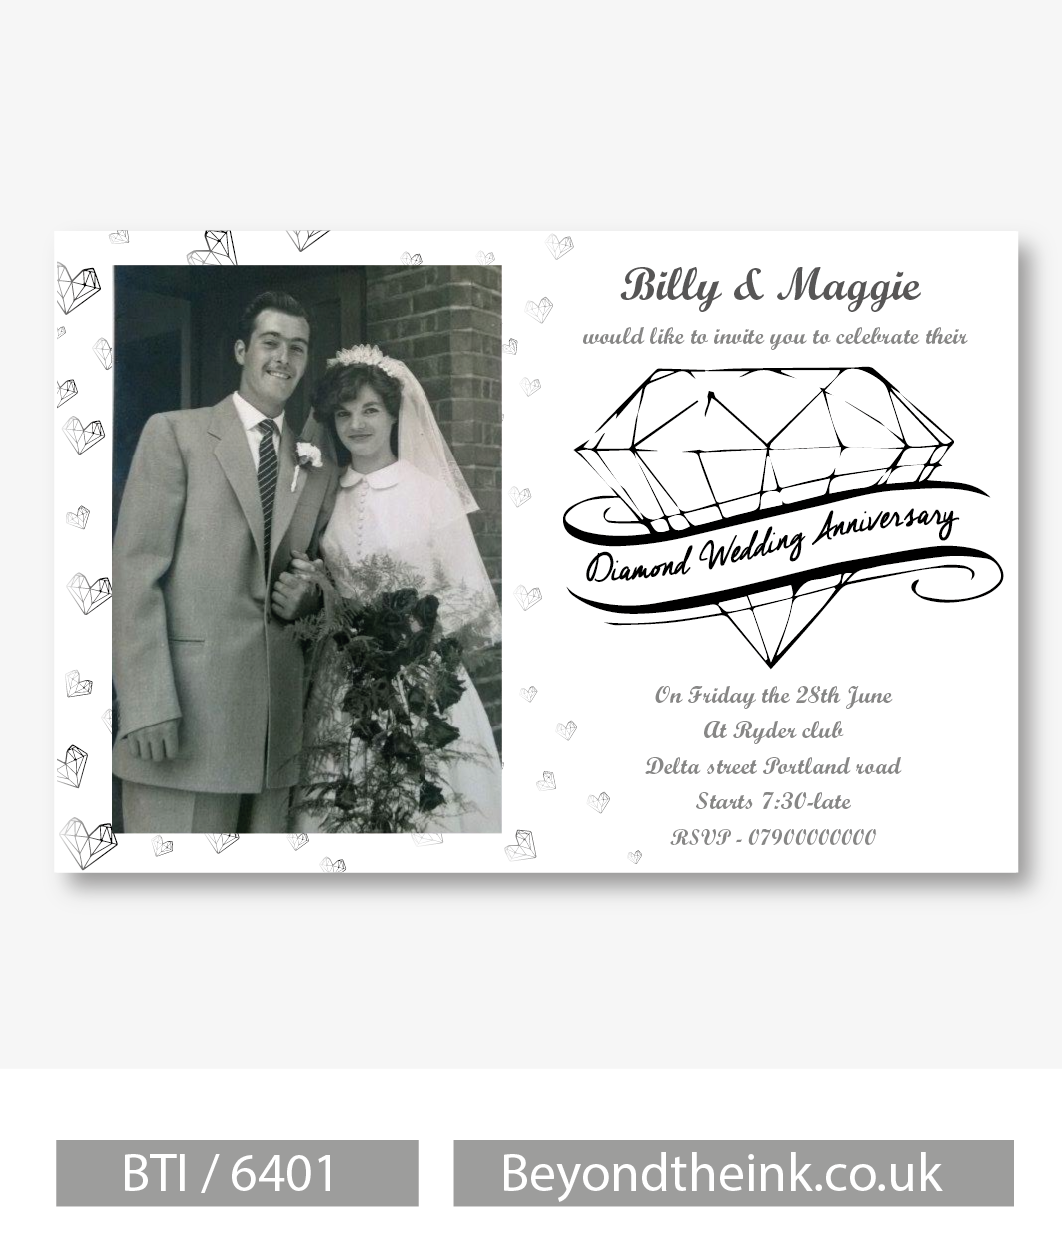 Delightful Personalised Diamond 60th Wedding Anniversary Photo Invitation | Beyond The  Ink